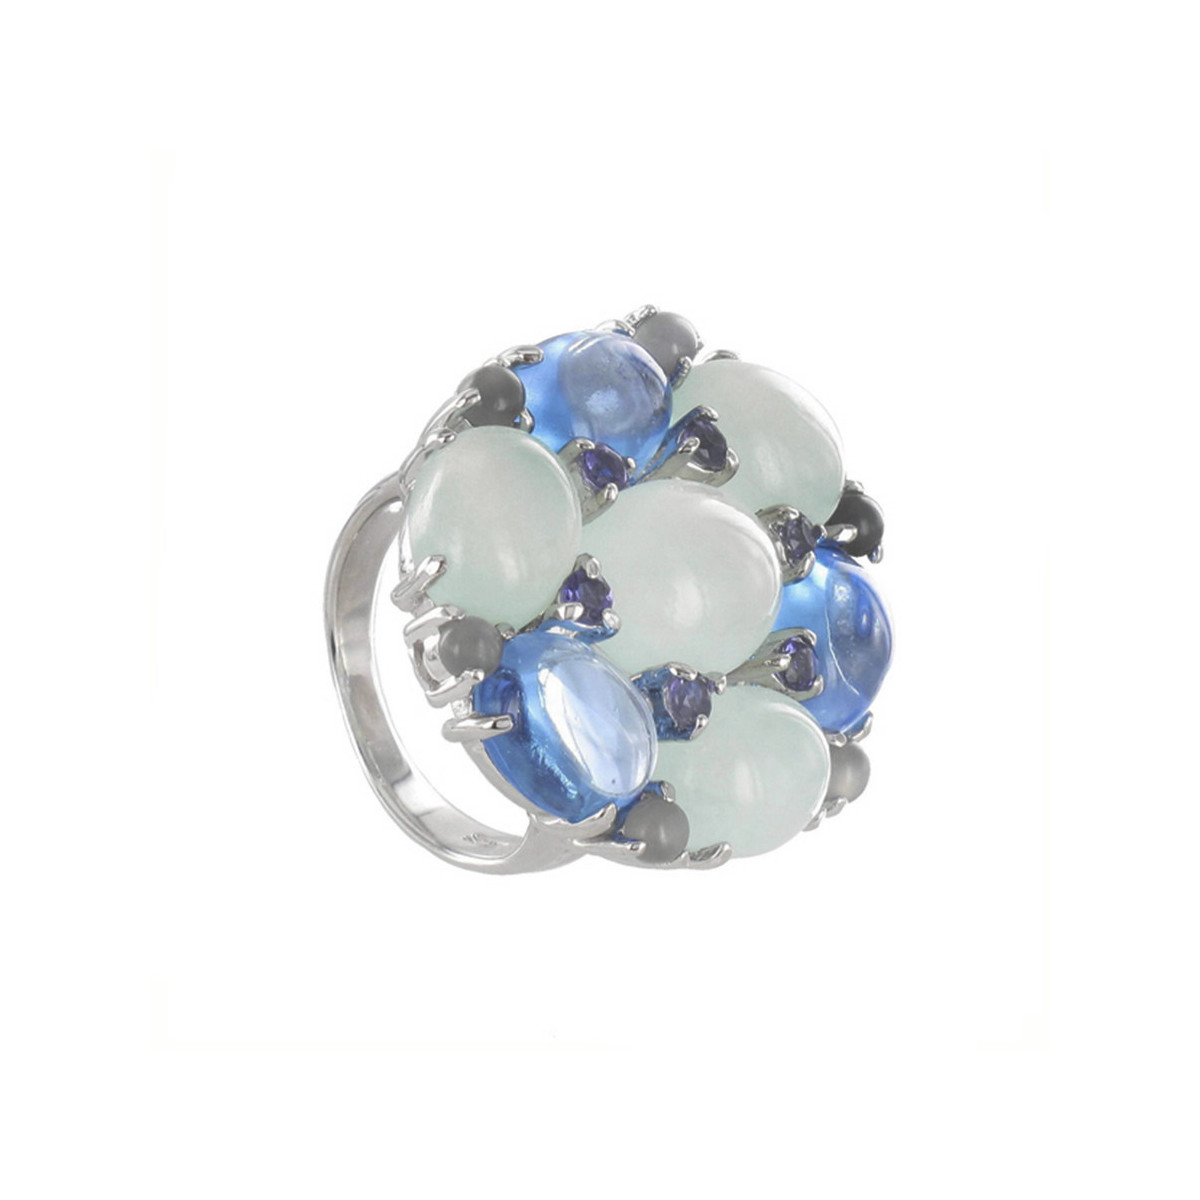 STERLING SILVER RING WITH MOON STONES